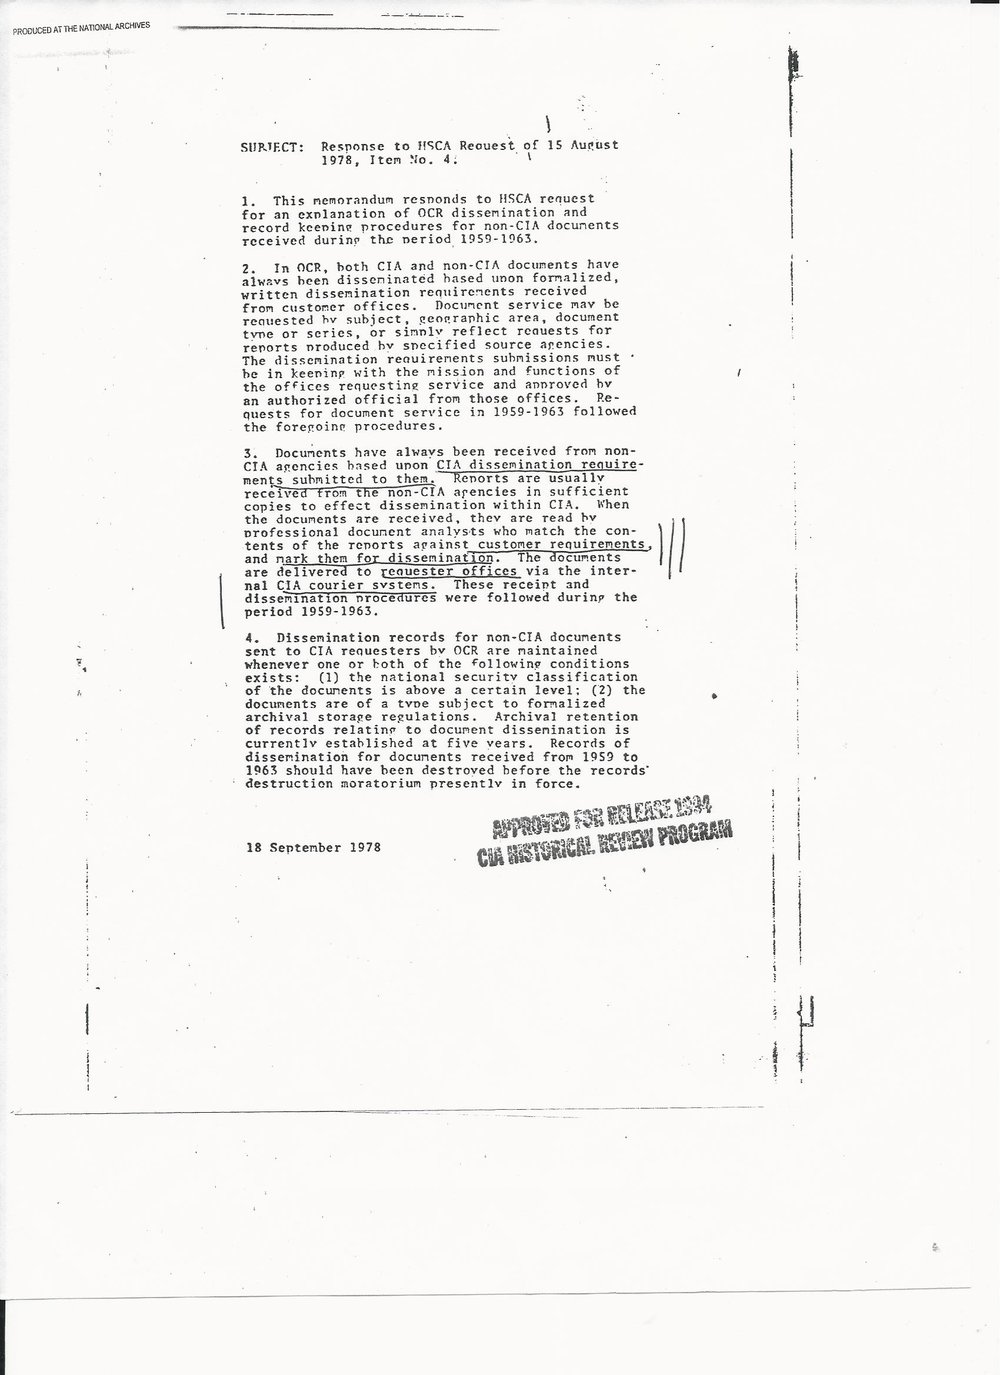 EISENBESS MEMO USED TO RESPOND TO 8 15 78 HSCA RQST.jpg